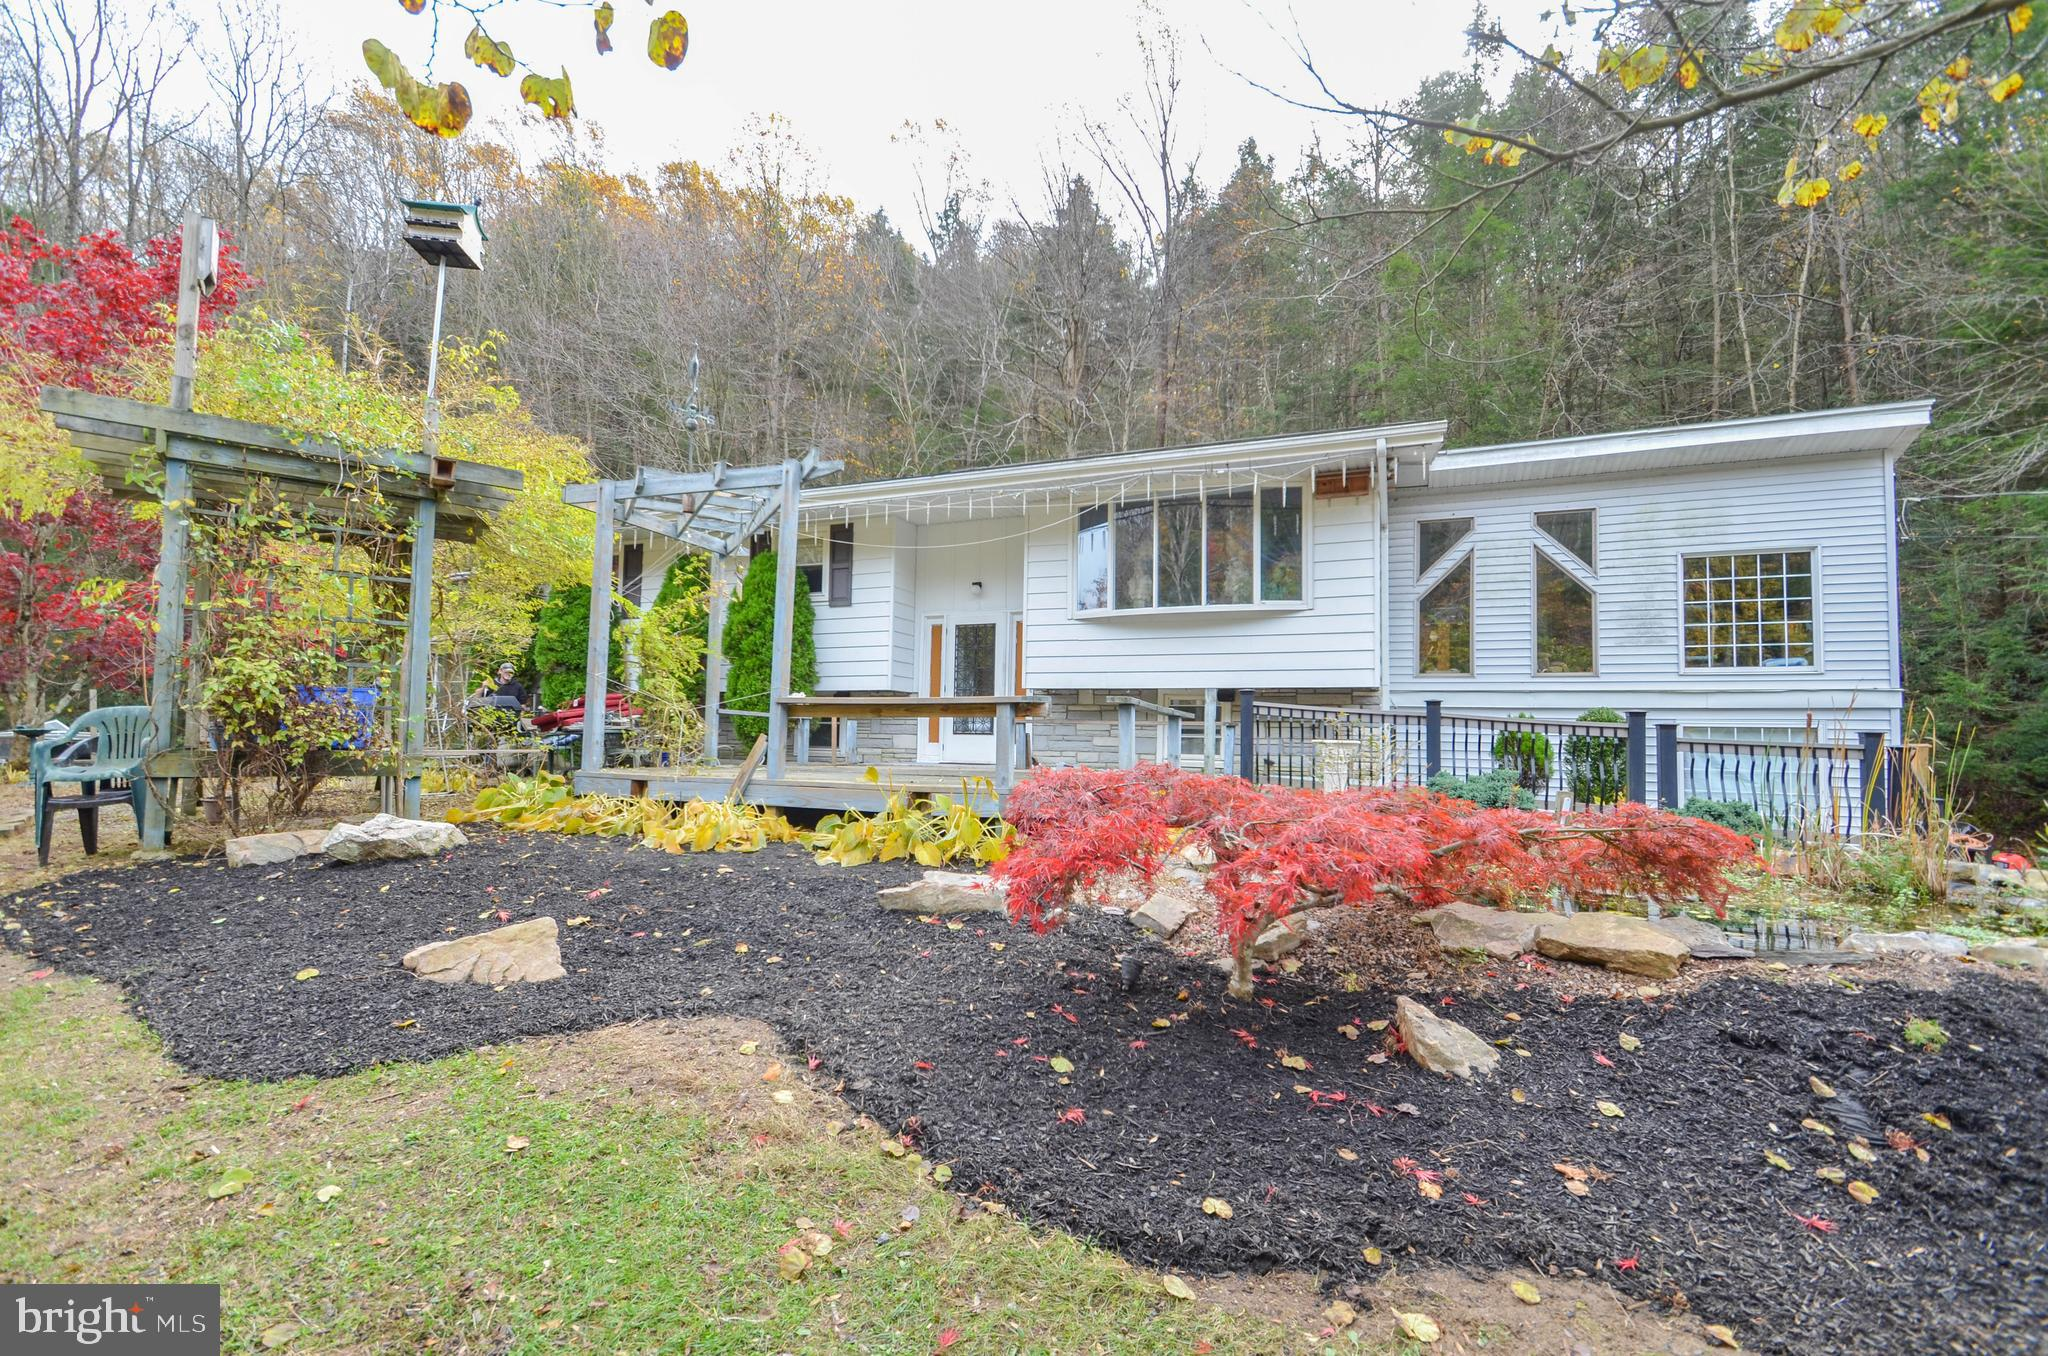 1468 Lower Smith Gap ROAD, KUNKLETOWN, PA 18058